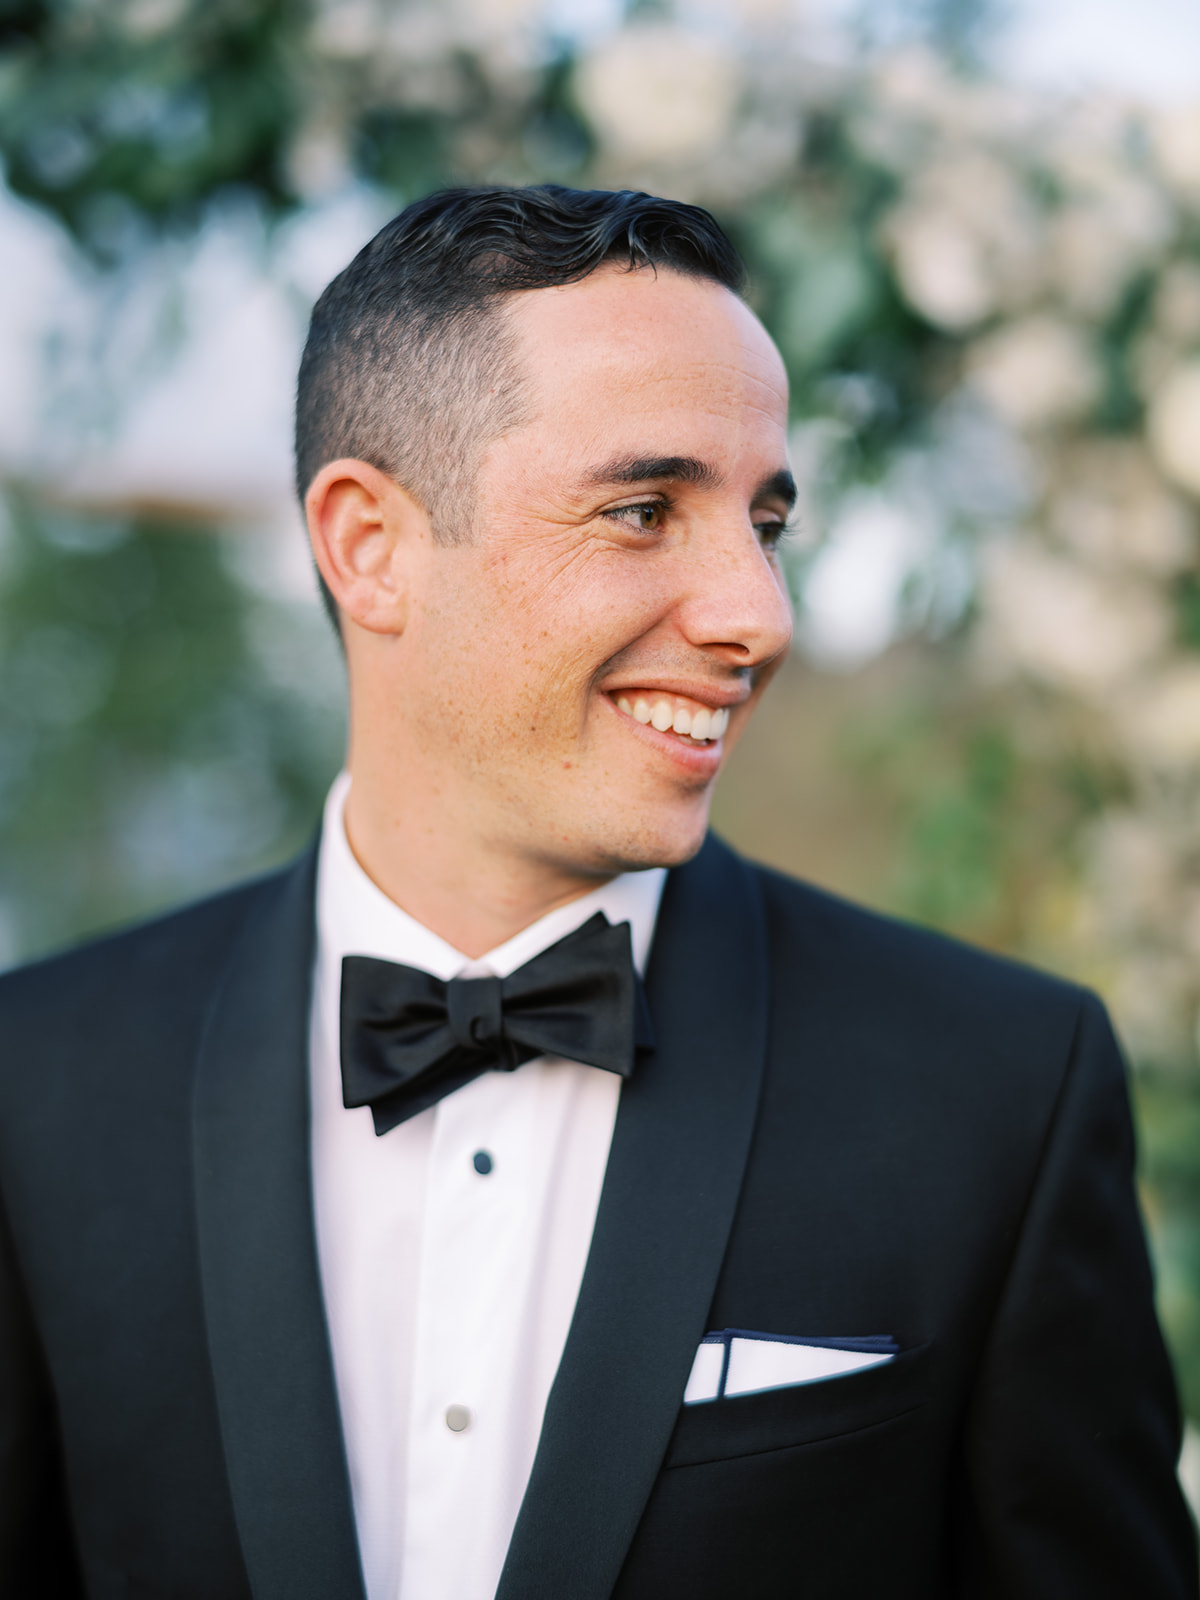 groom wearing traditional black and white tux with bow tie